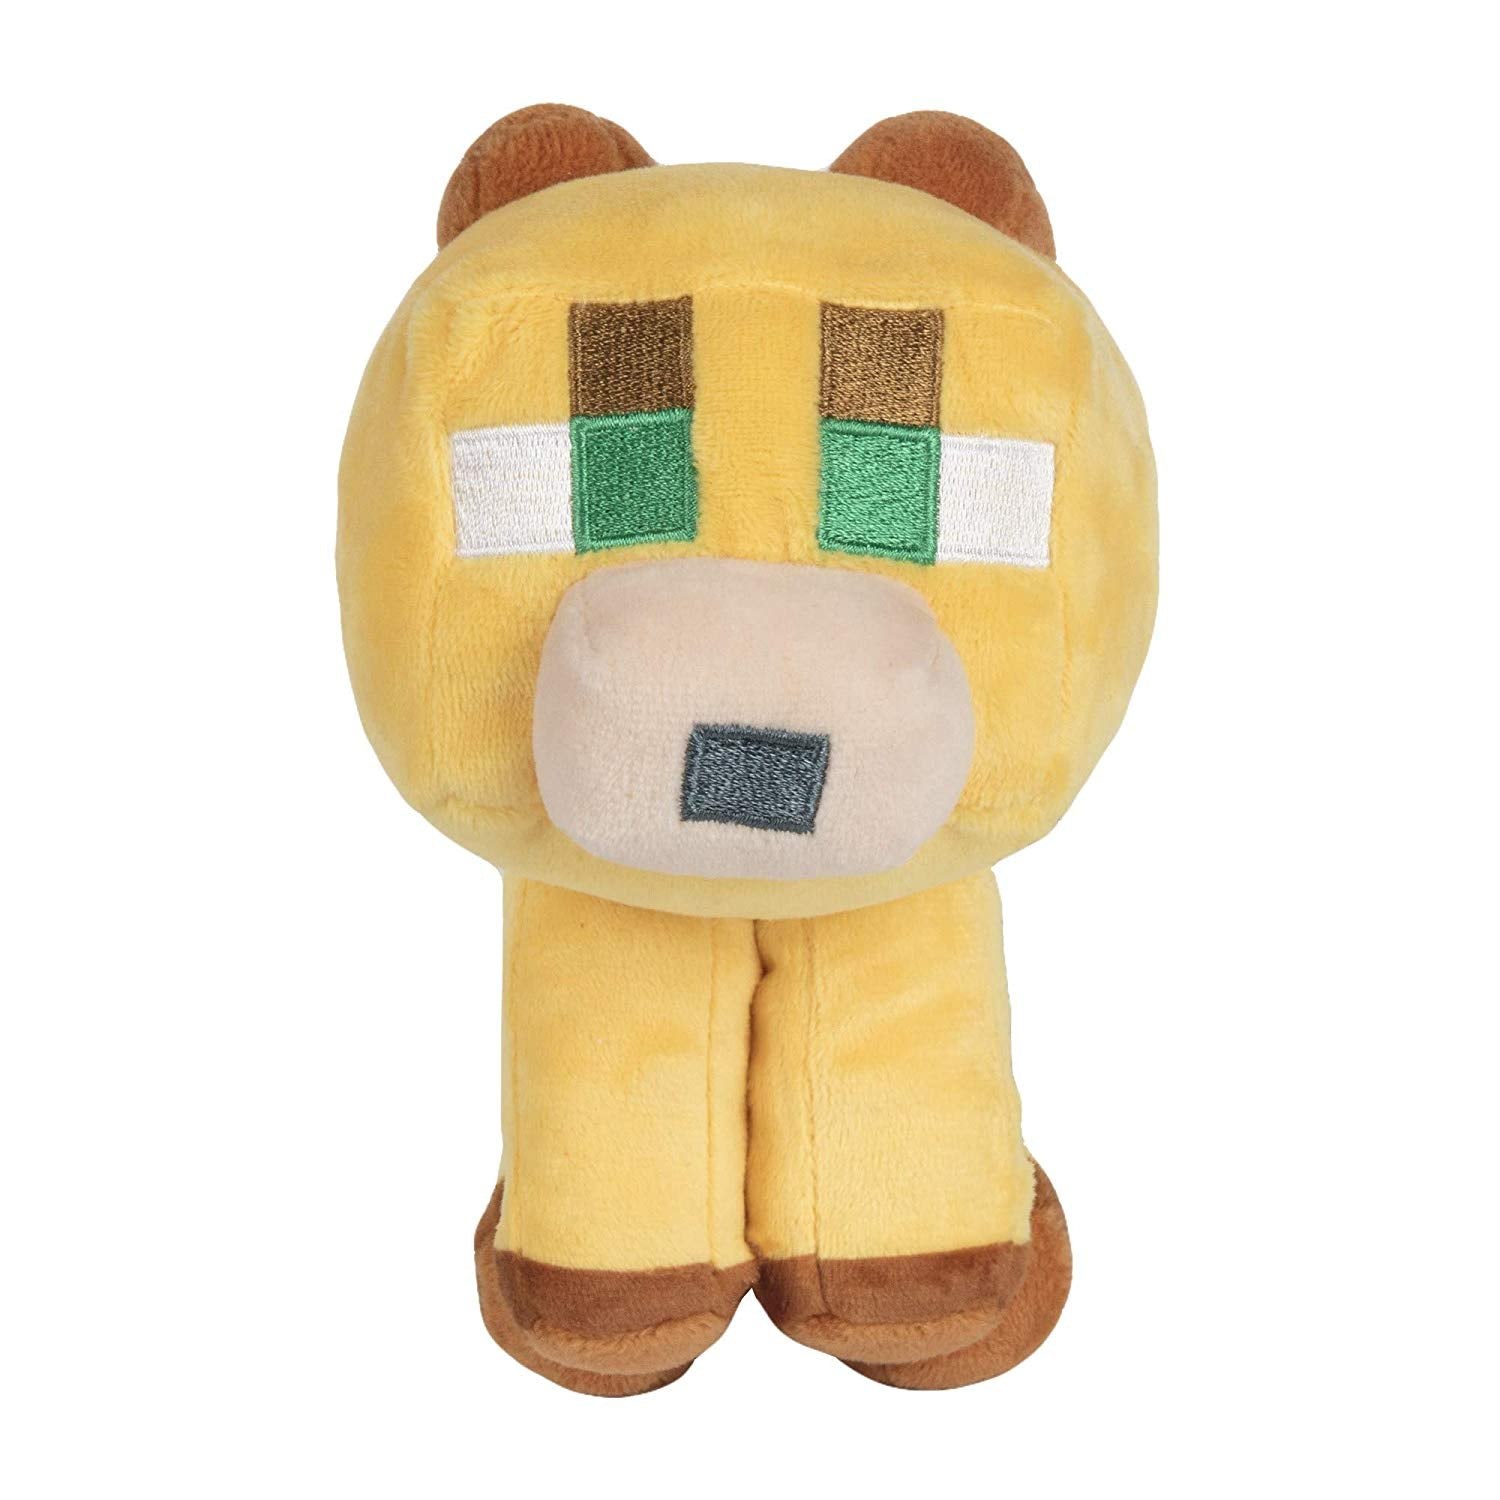 Minecraft 8727 Happy Explorer Baby Ocelot